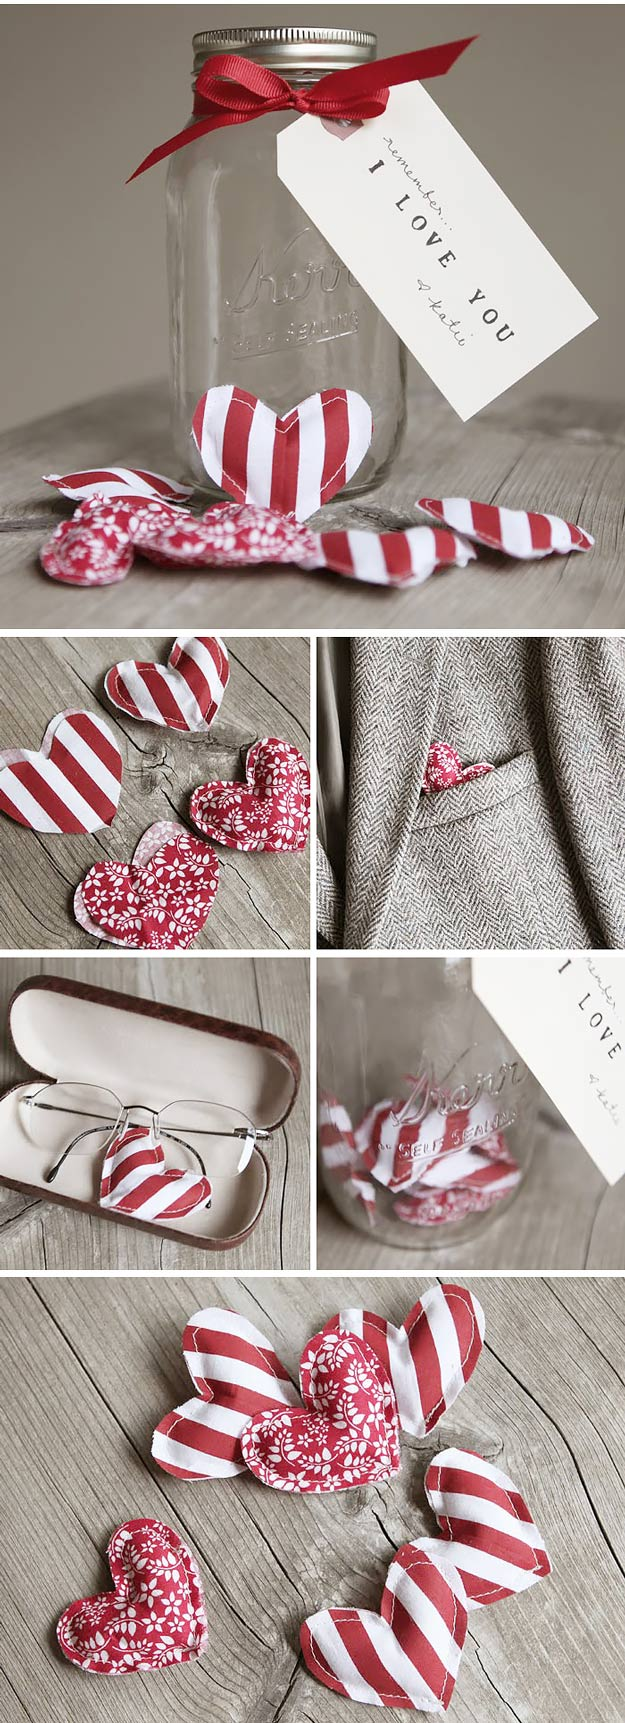 Mason Jar Valentine Gifts and Crafts   DIY Ideas for Valentines Day for Cute Gift Giving and Decor   Fabric Hearts in Mason Jar   #valentines